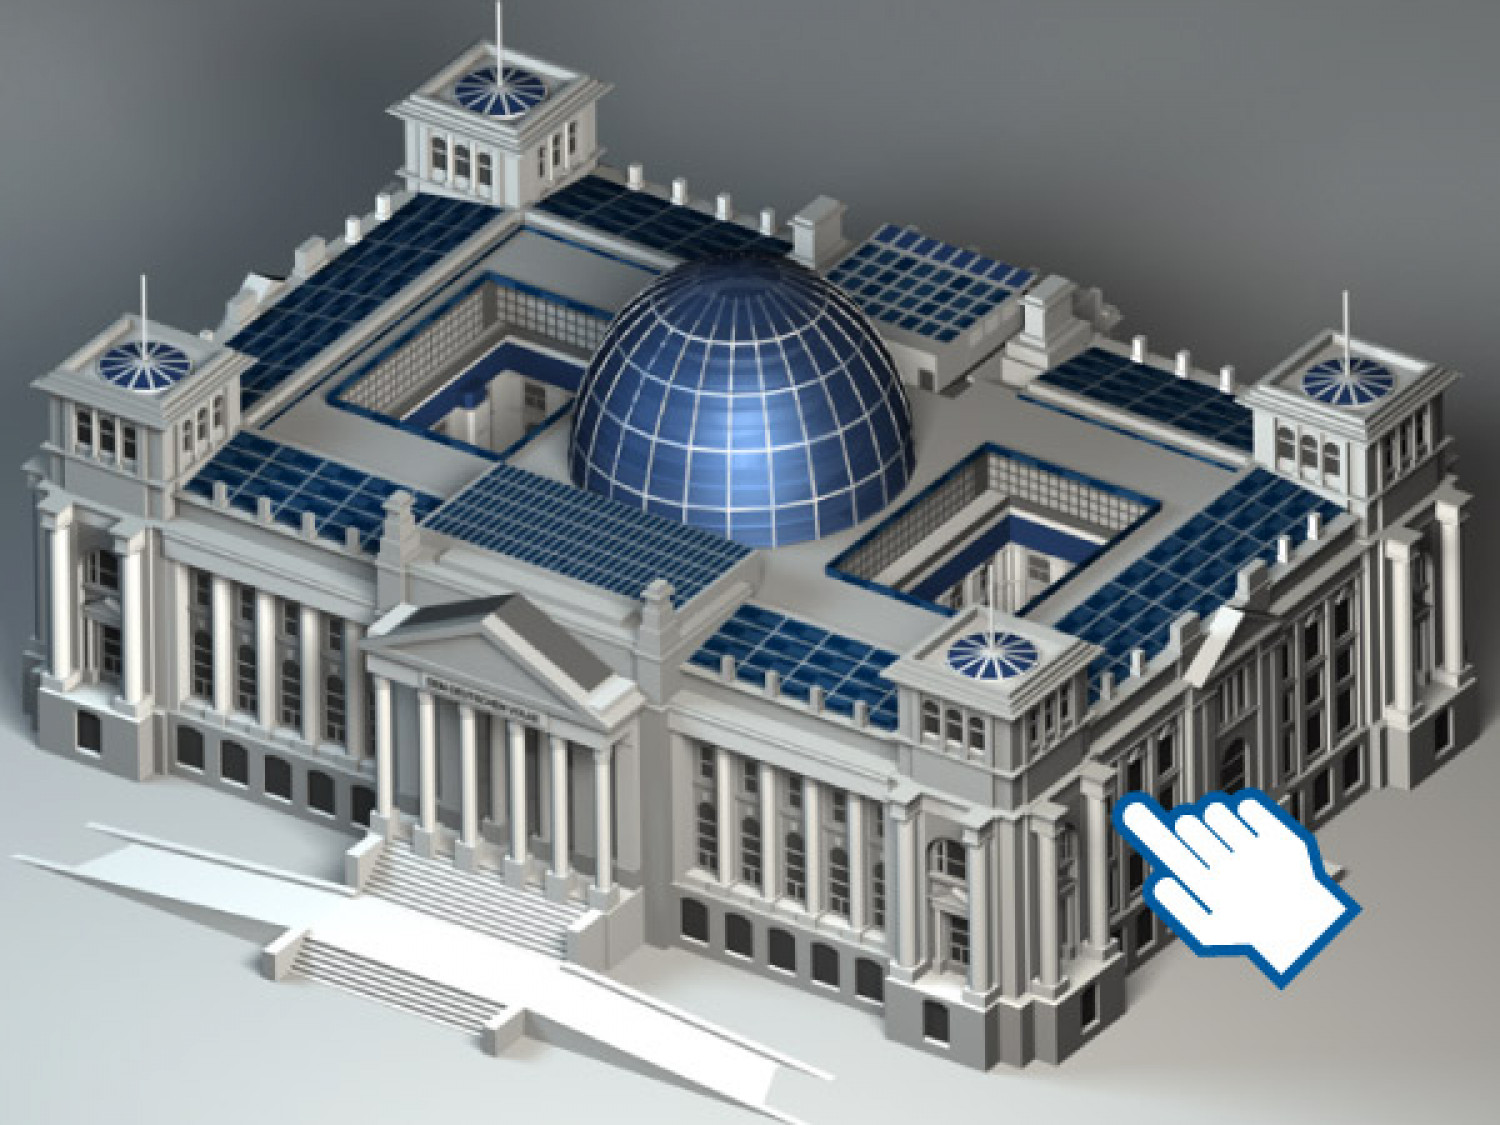 Reichstag Infographic